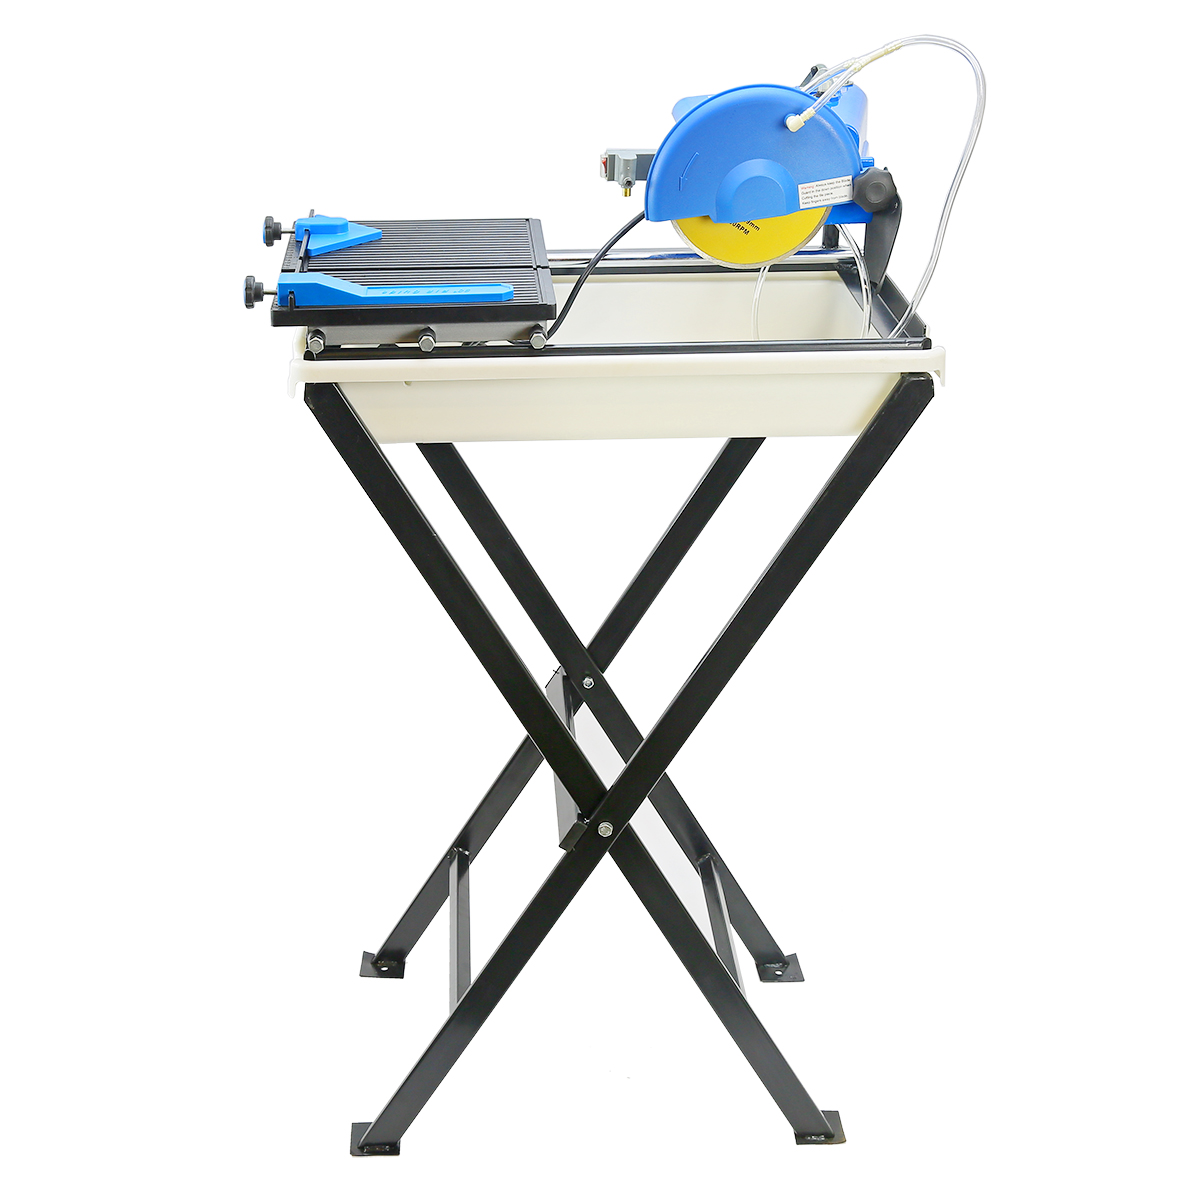 stark professional 7 in ceramic tile saw with stand blade guide machine wet tile cutter set